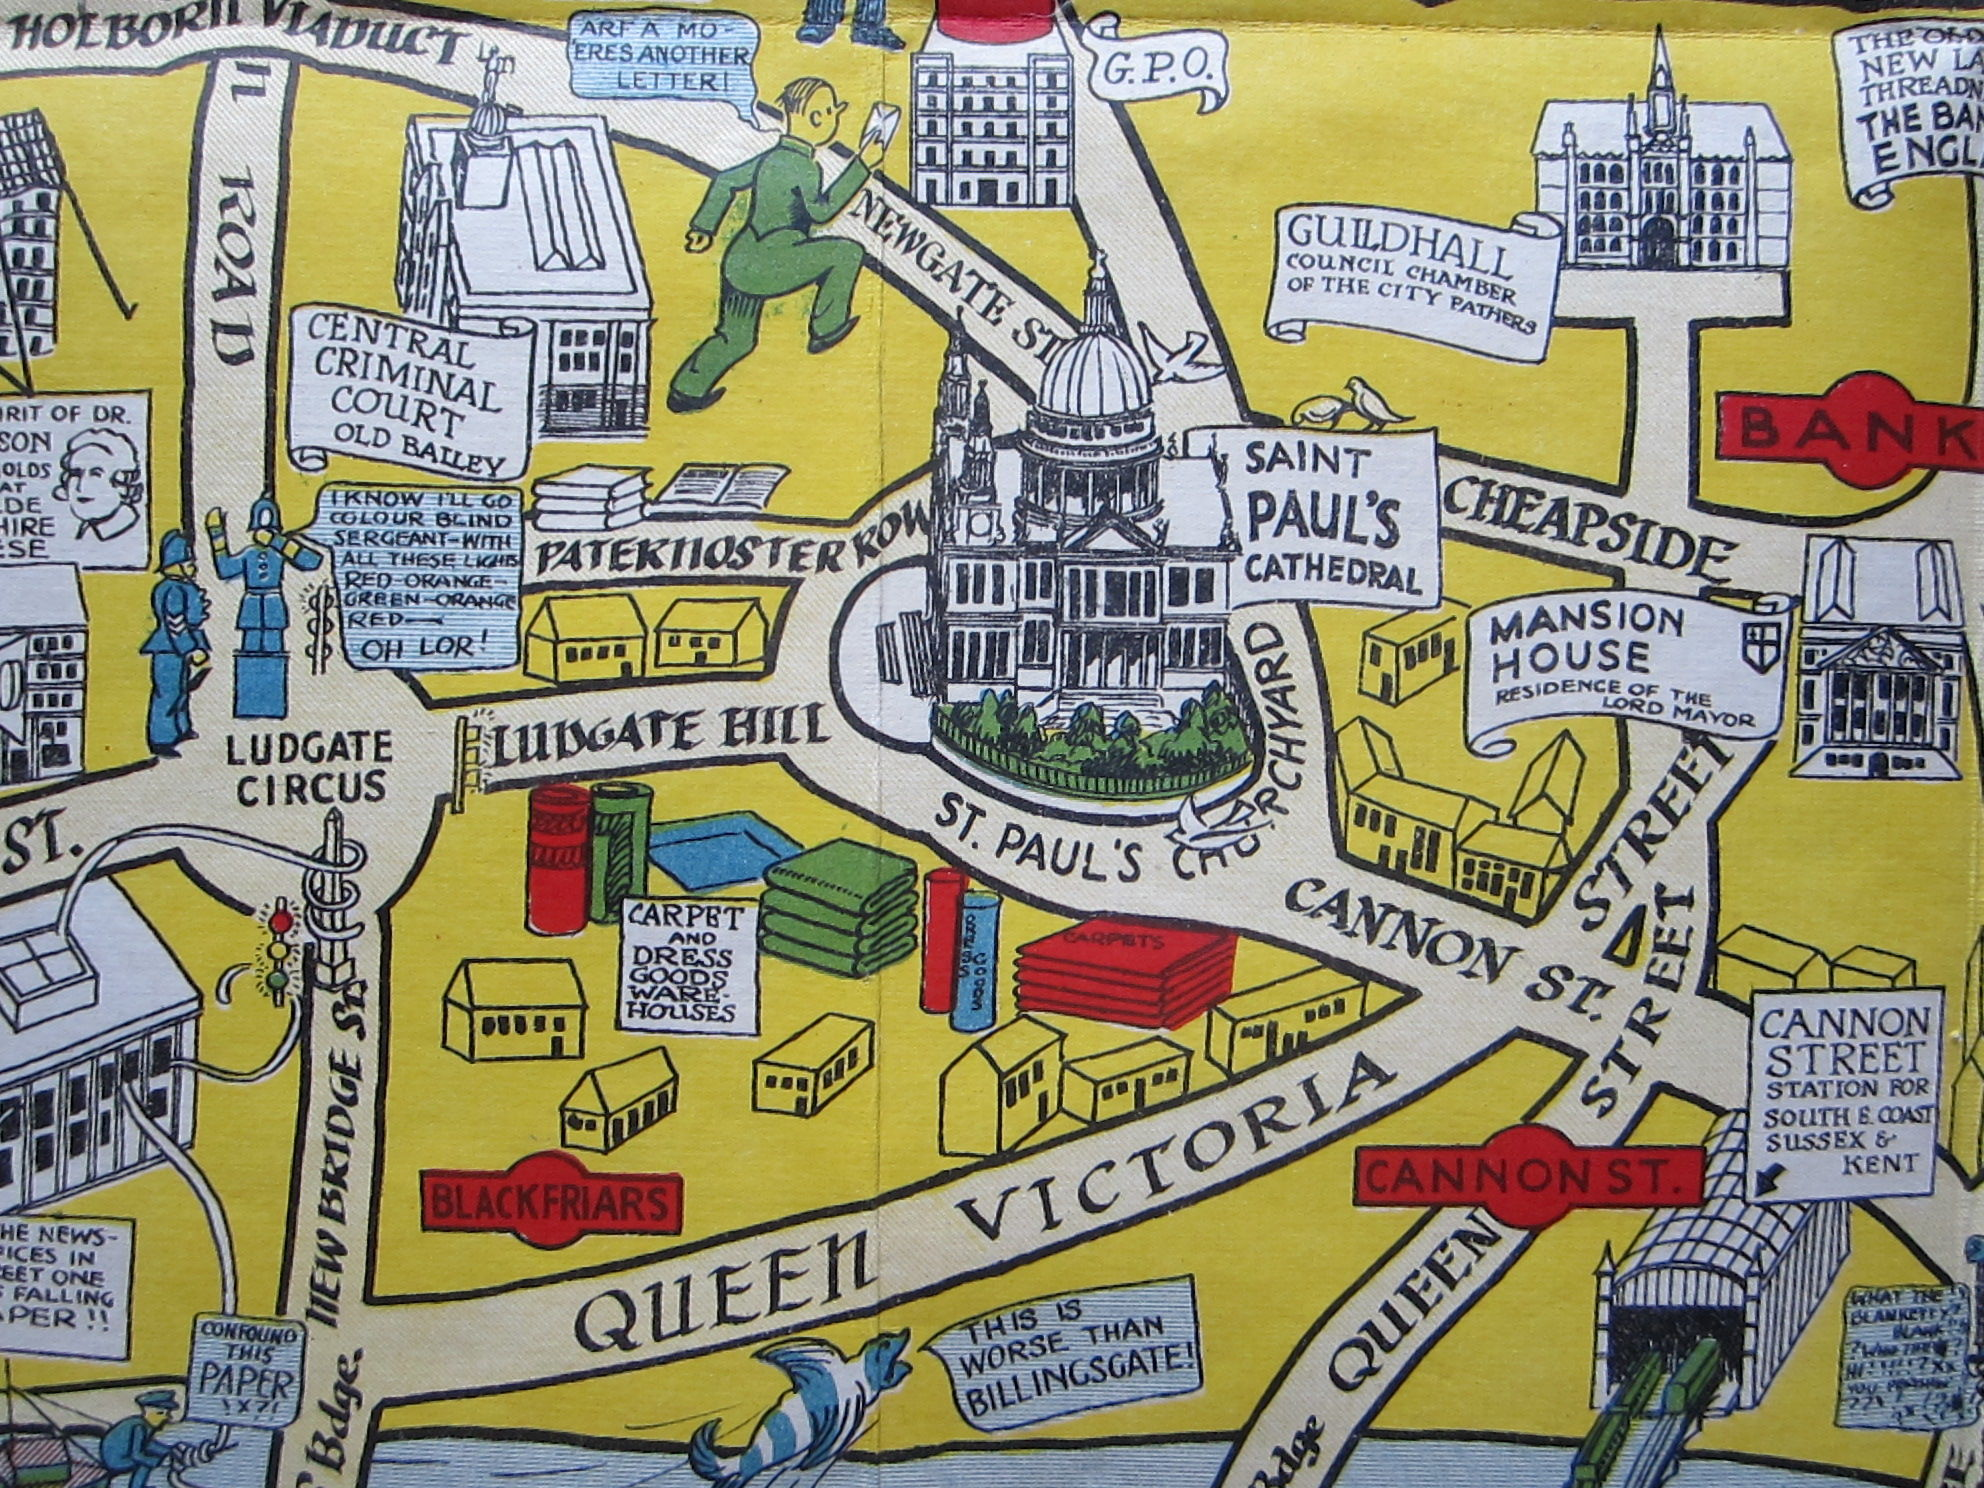 The New Pictorial Map of London (photo 6)